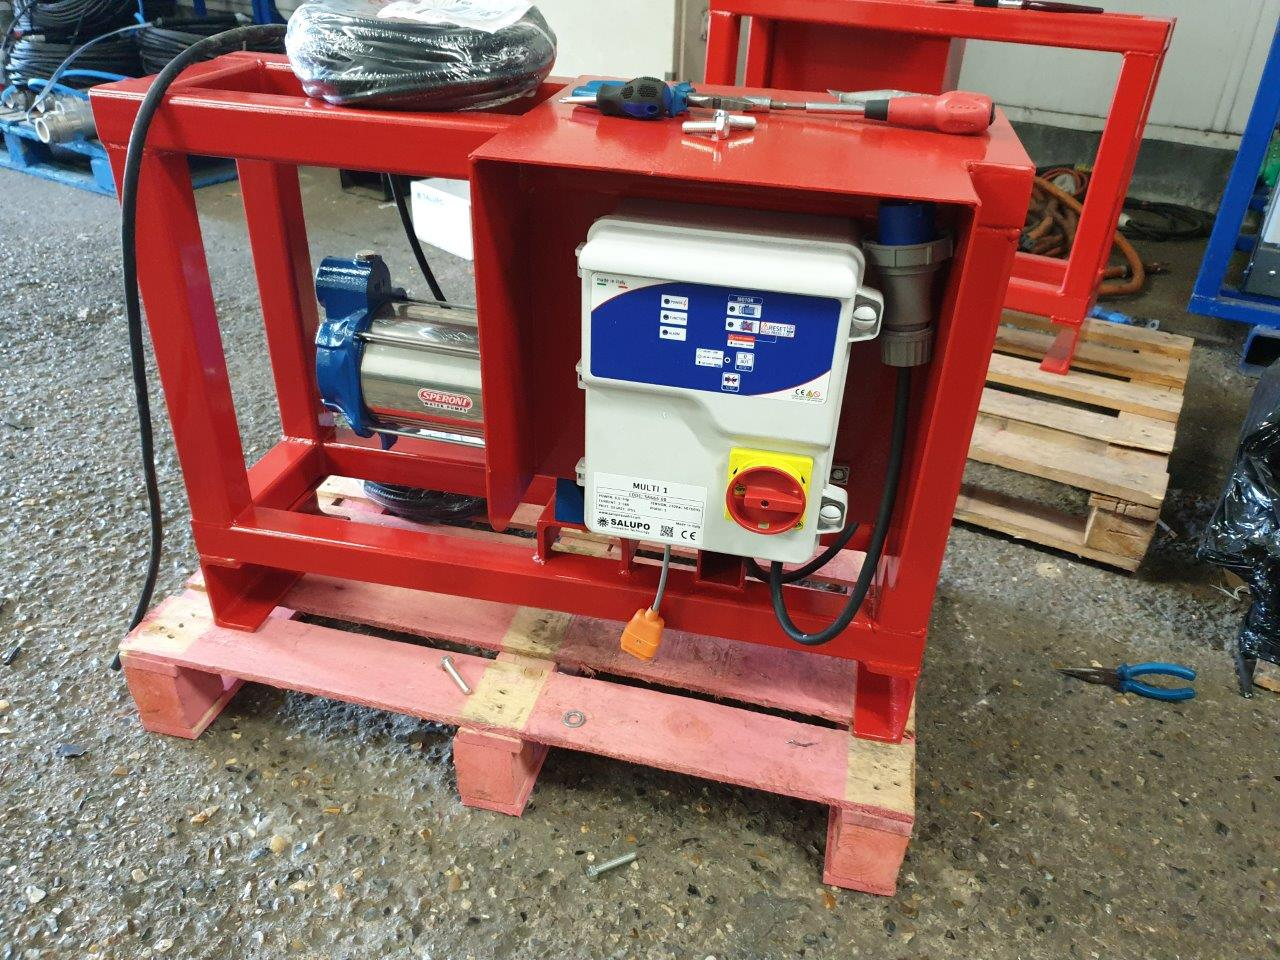 Stuart Pumps Ltd have designed and built a 'Fire Application' water pumping solutions.